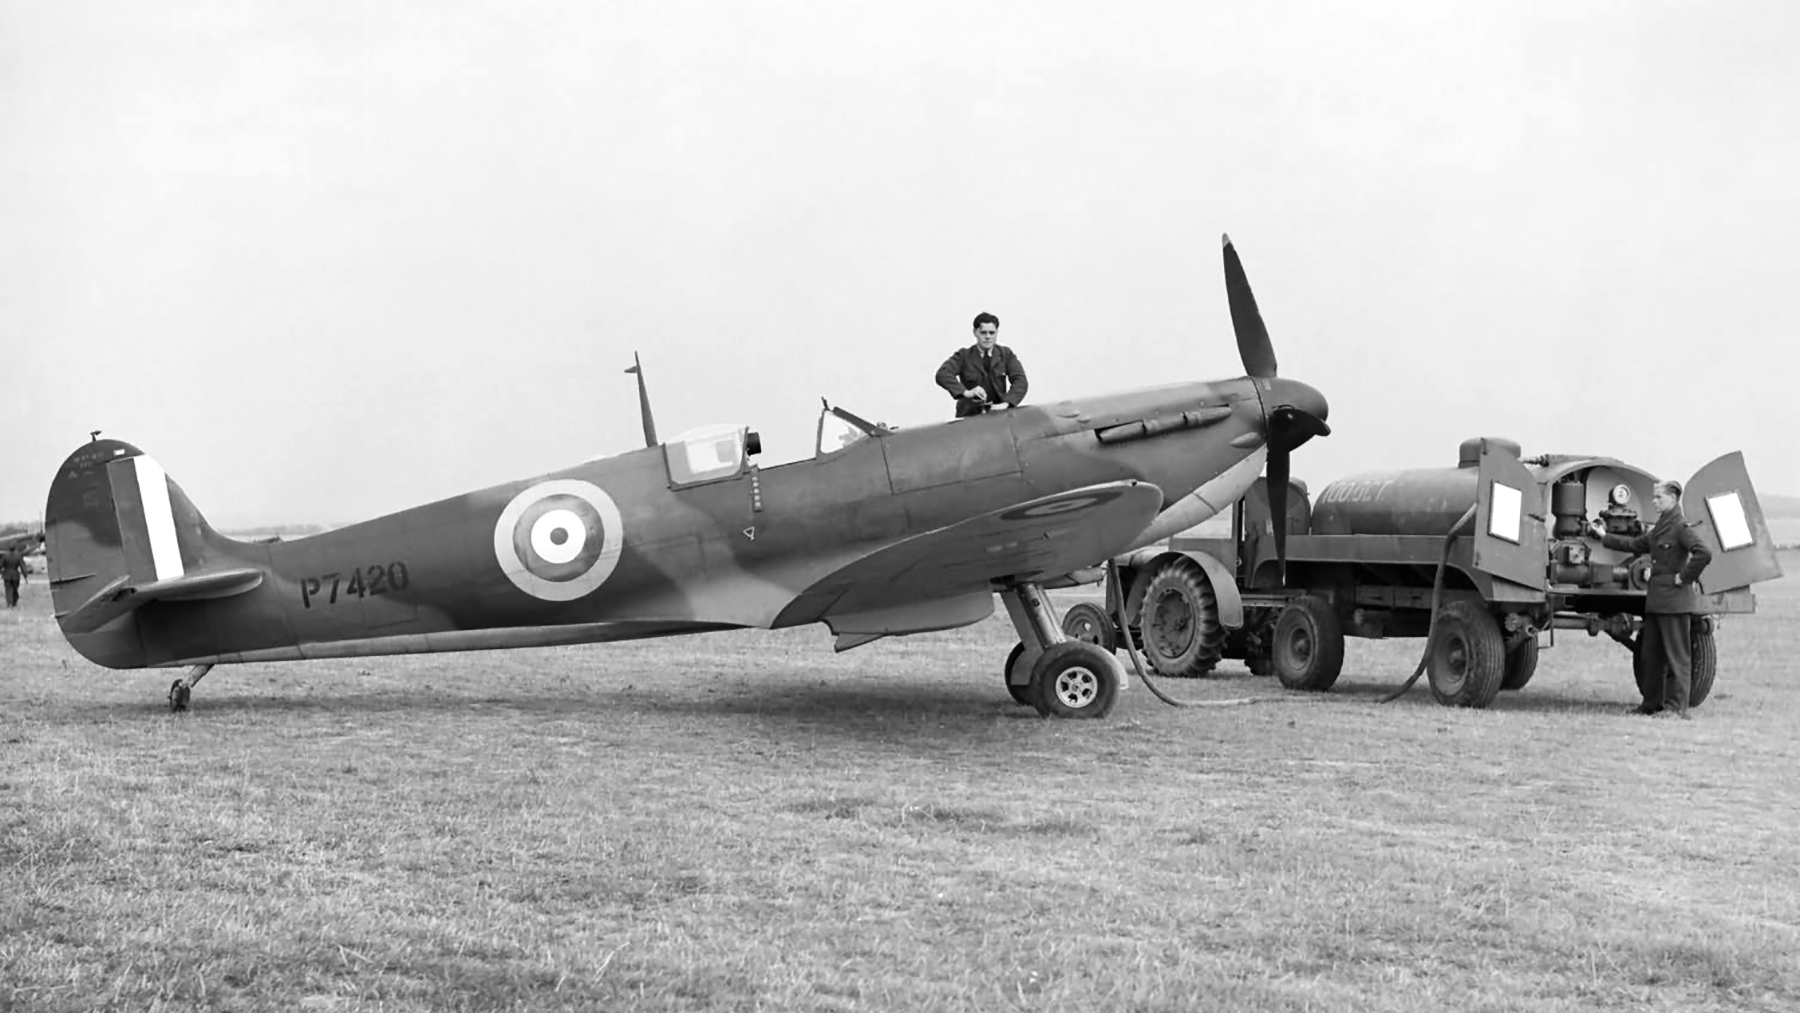 Spitfire MkIIa RAF 19Sqn P7420 being refueled during Battle of Britain 1940 web 01